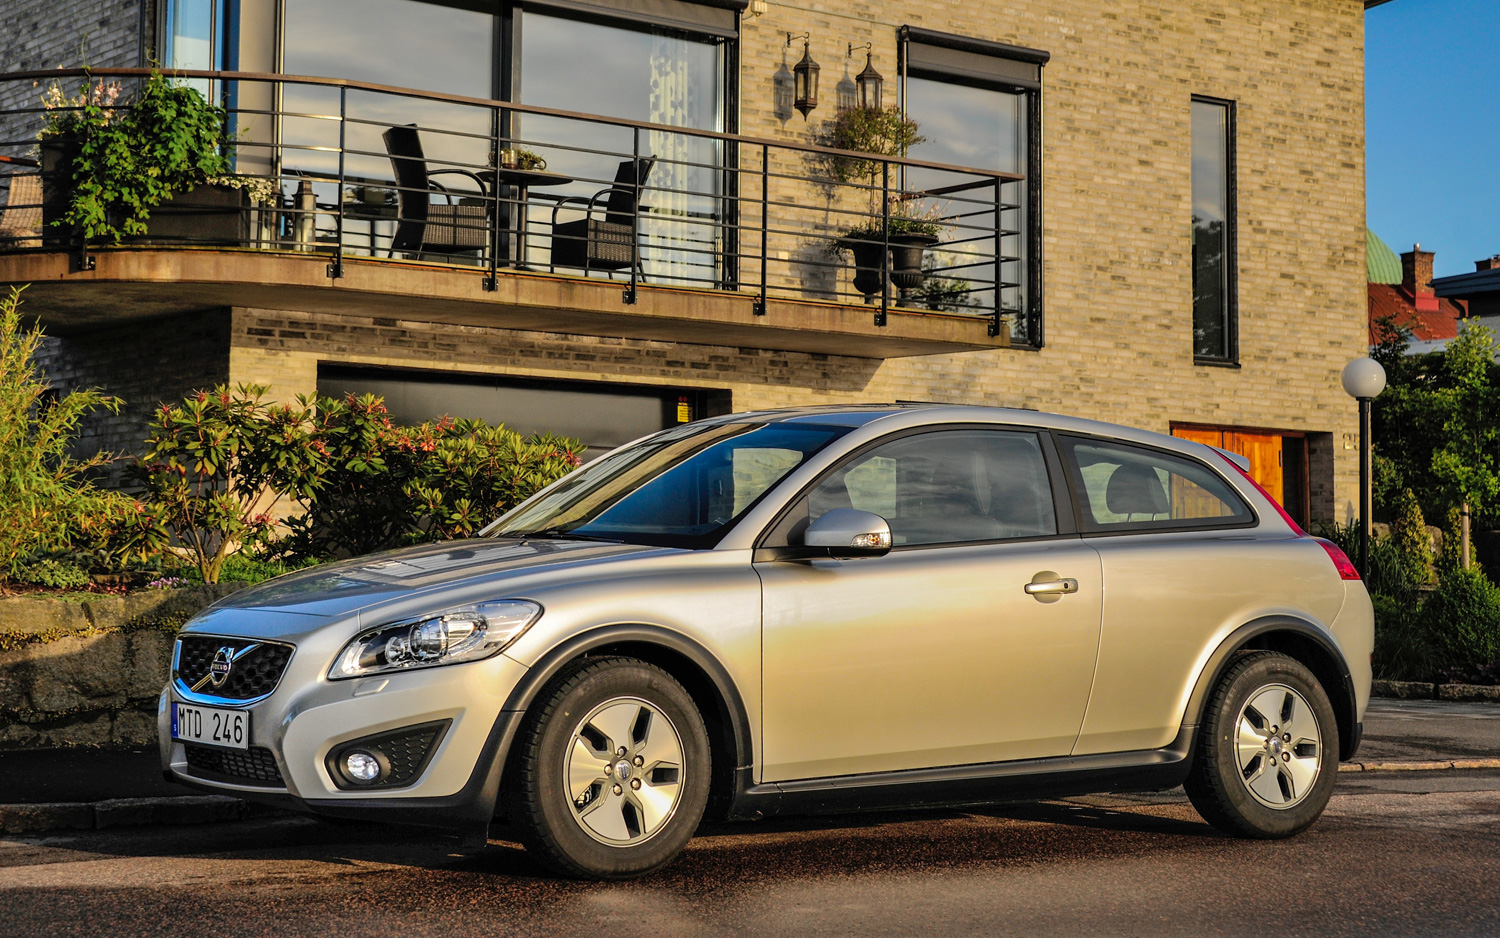 volvo confirms decision to kill c30 hatchback after this year